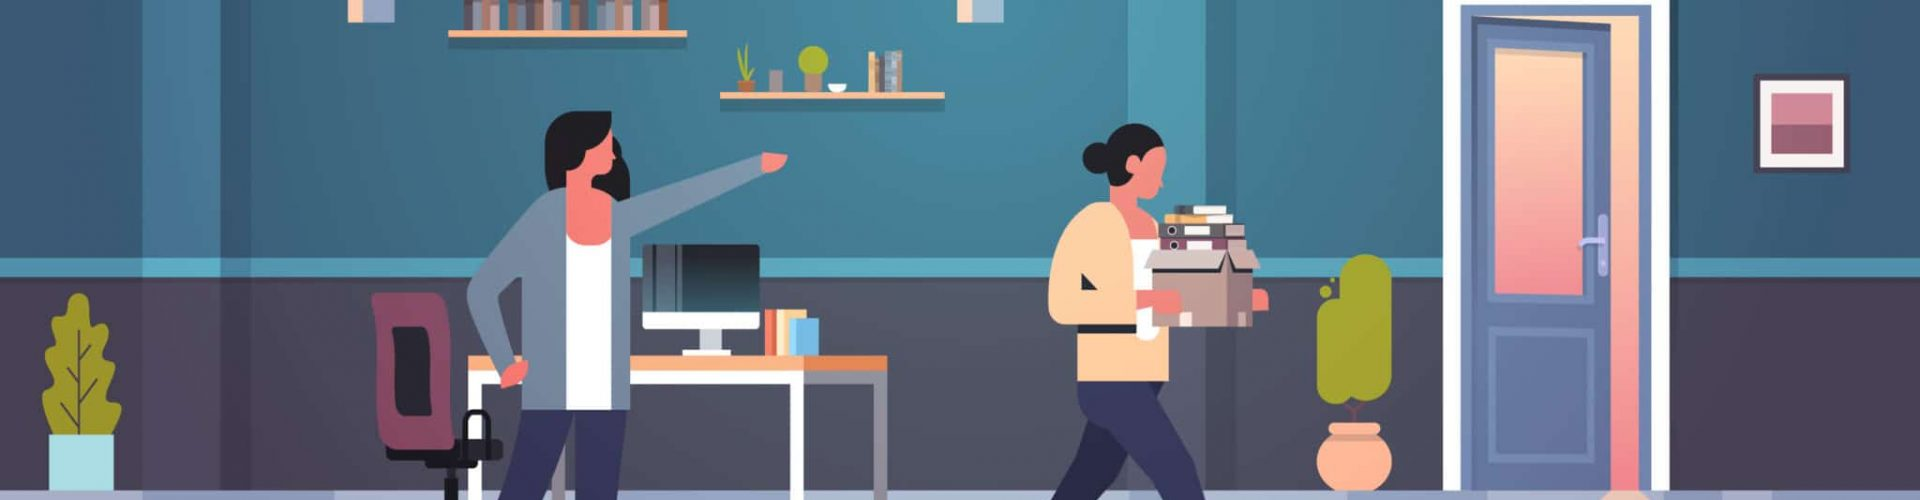 female boss dismisses pointing finger at door fired woman employee with paper documents box dismissal unemployment jobless concept flat modern office interior horizontal vector illustration